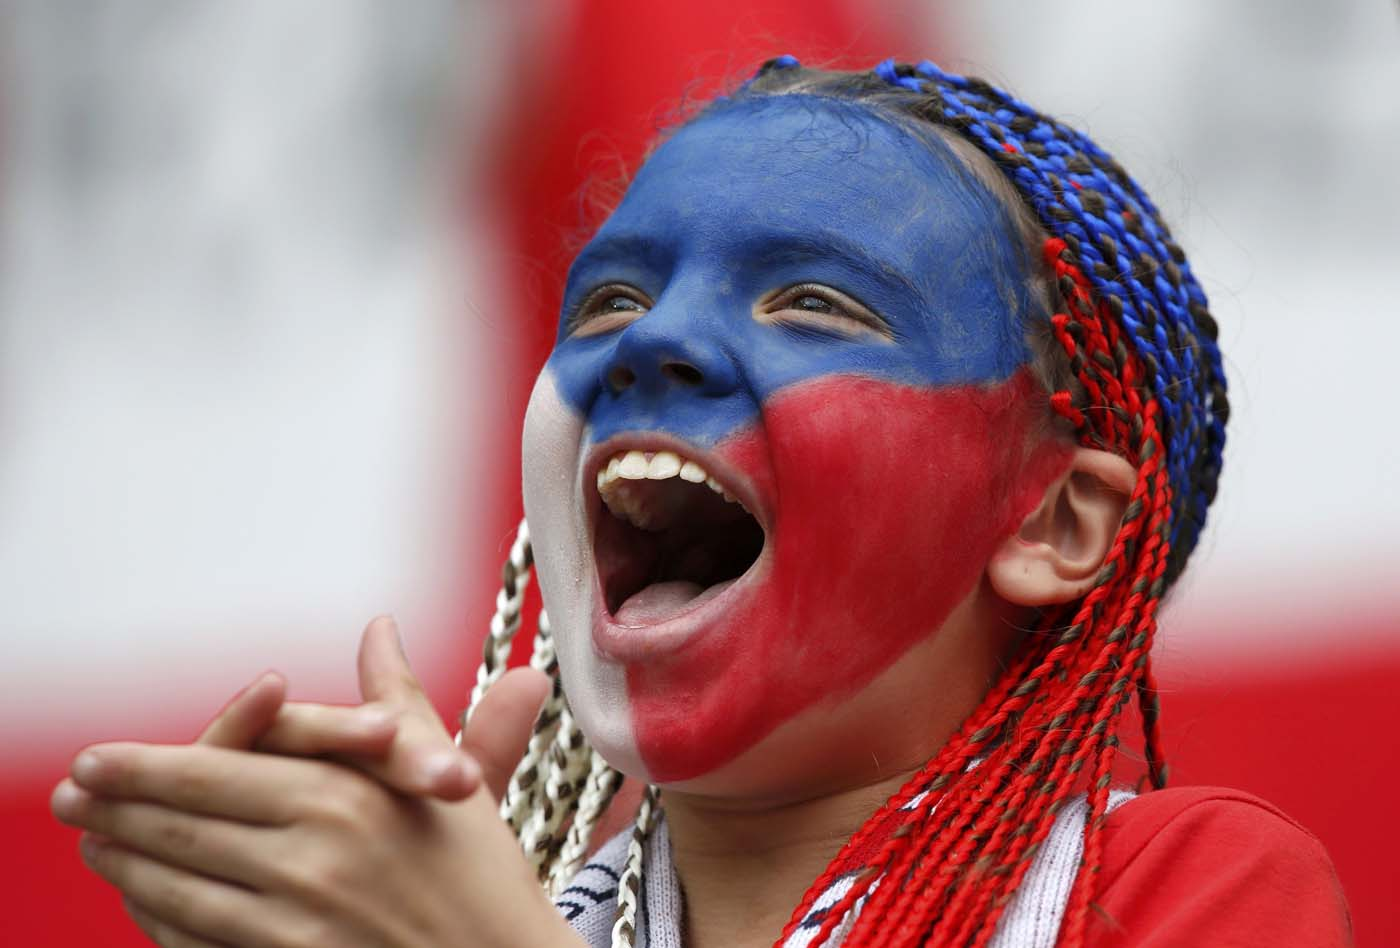 Czech Republic's soccer team fan with her face painted cheers before the start of the Group A Euro 2012 soccer match against Greece at the City stadium in Wroclaw June 12, 2012. (Sergio Perez/Reuters)